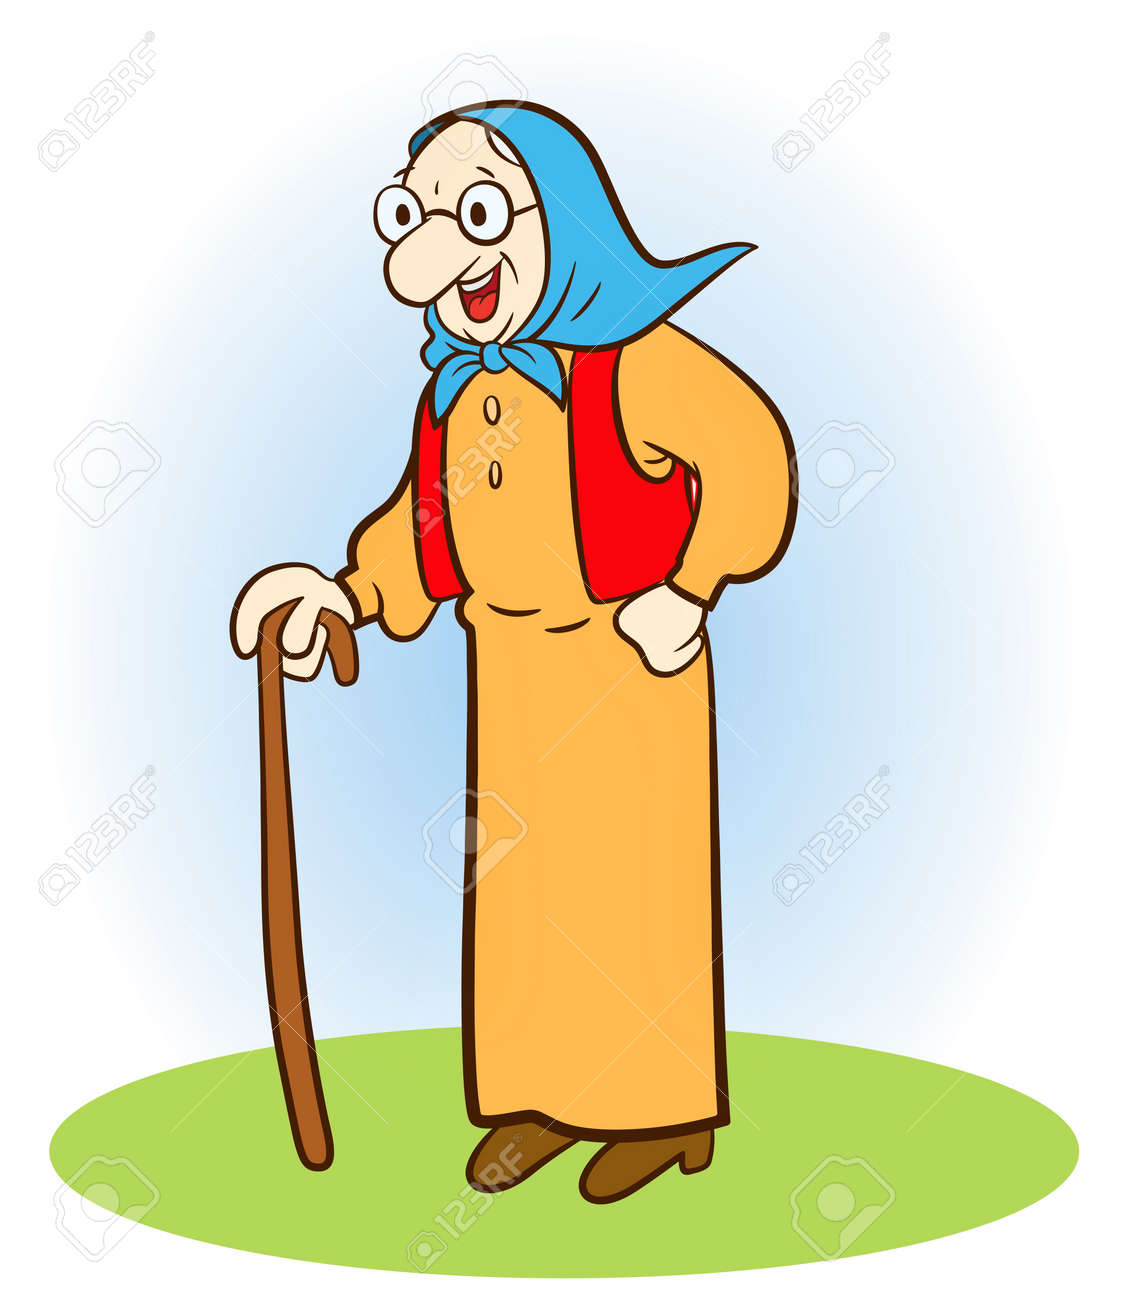 old woman royalty free cliparts vectors and stock illustration rh 123rf com funny old woman clipart grumpy old woman clipart